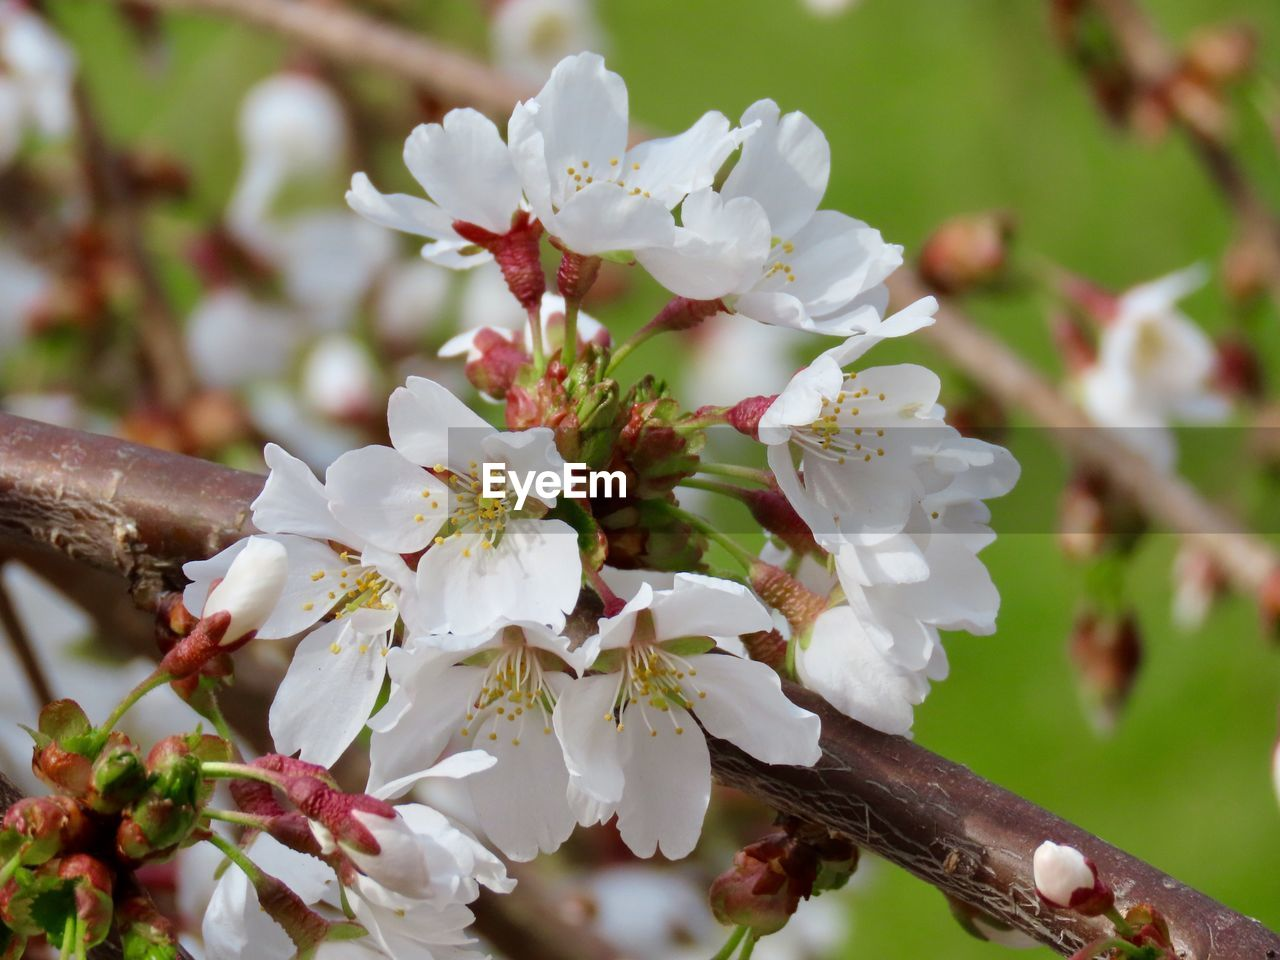 flower, flowering plant, plant, growth, fragility, beauty in nature, vulnerability, freshness, petal, close-up, white color, blossom, inflorescence, focus on foreground, tree, springtime, day, flower head, no people, branch, pollen, outdoors, cherry blossom, cherry tree, spring